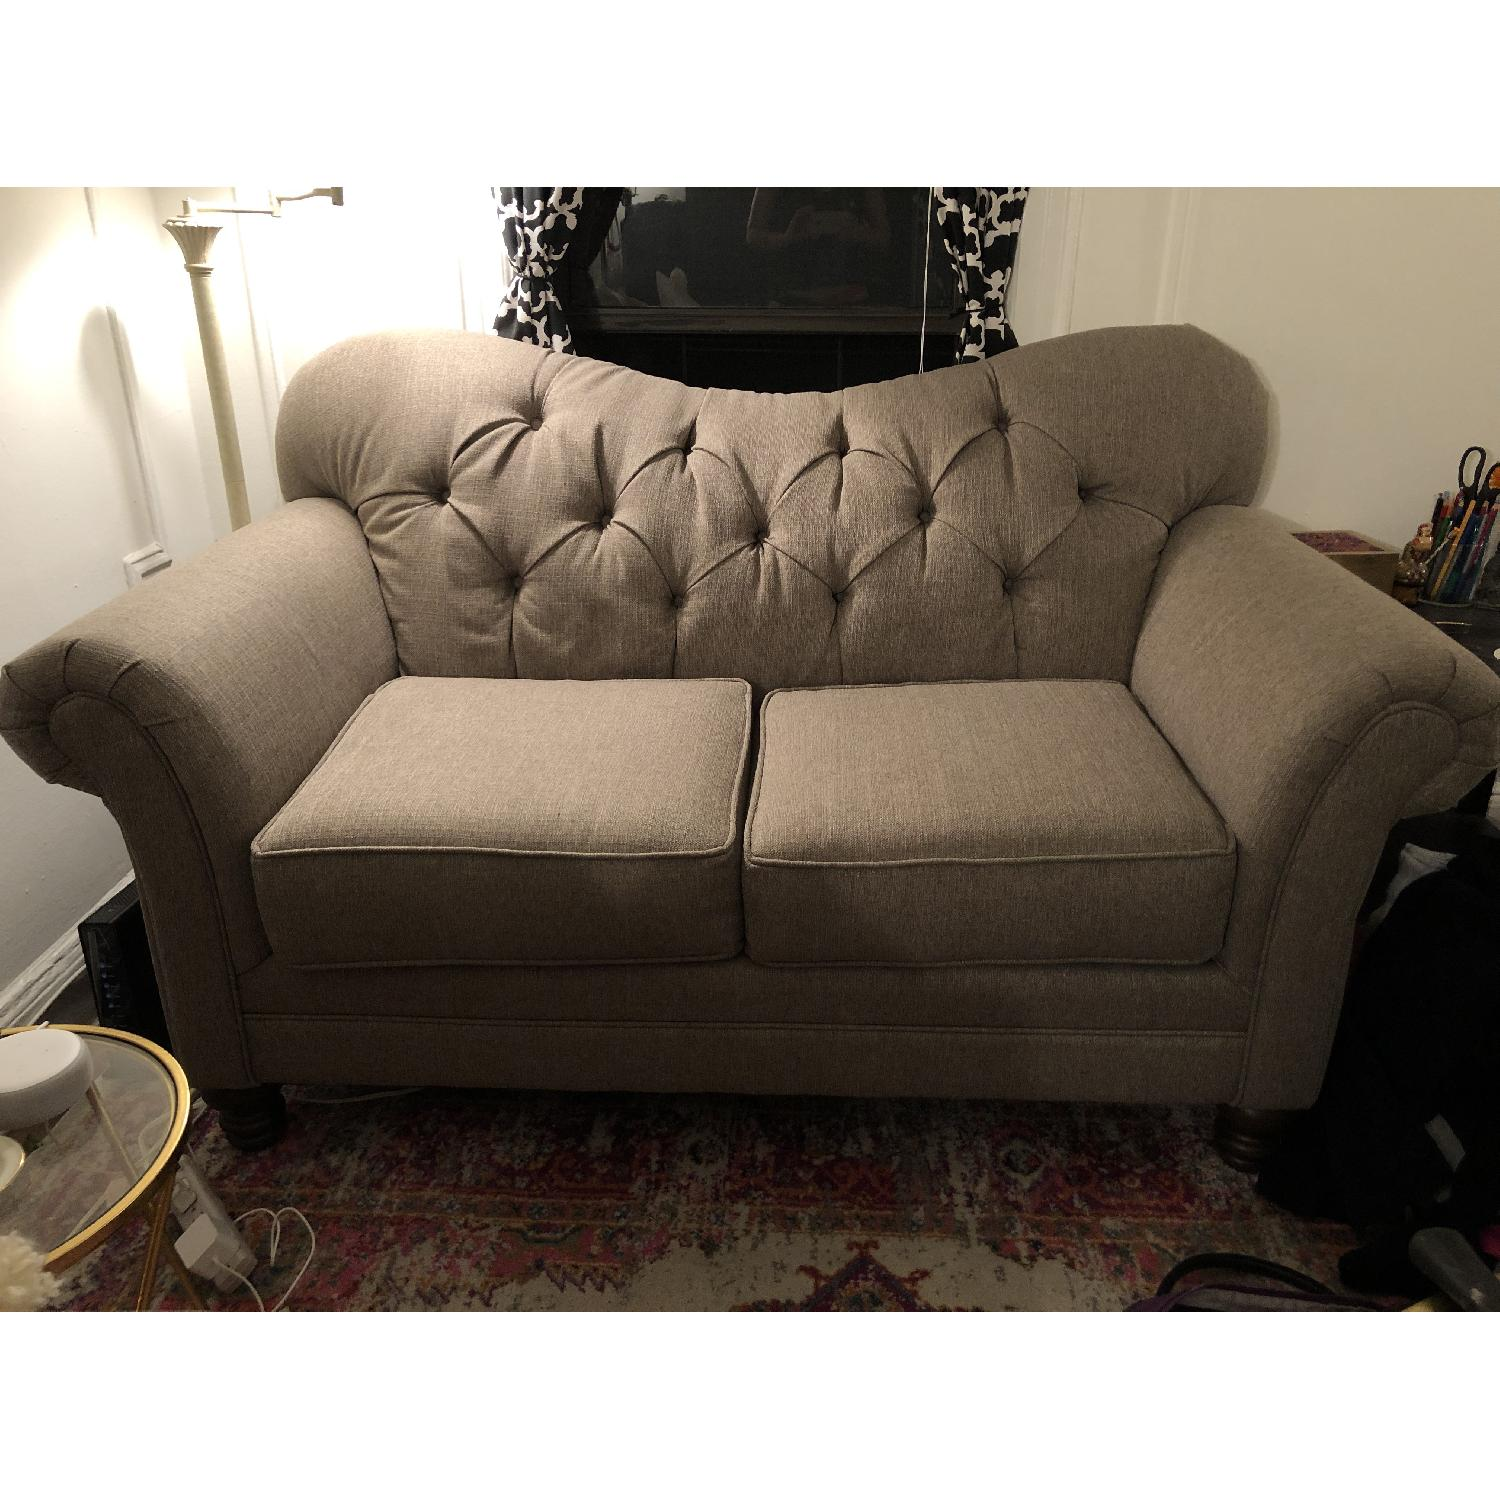 Gray/Natural Tufted Loveseat - image-1